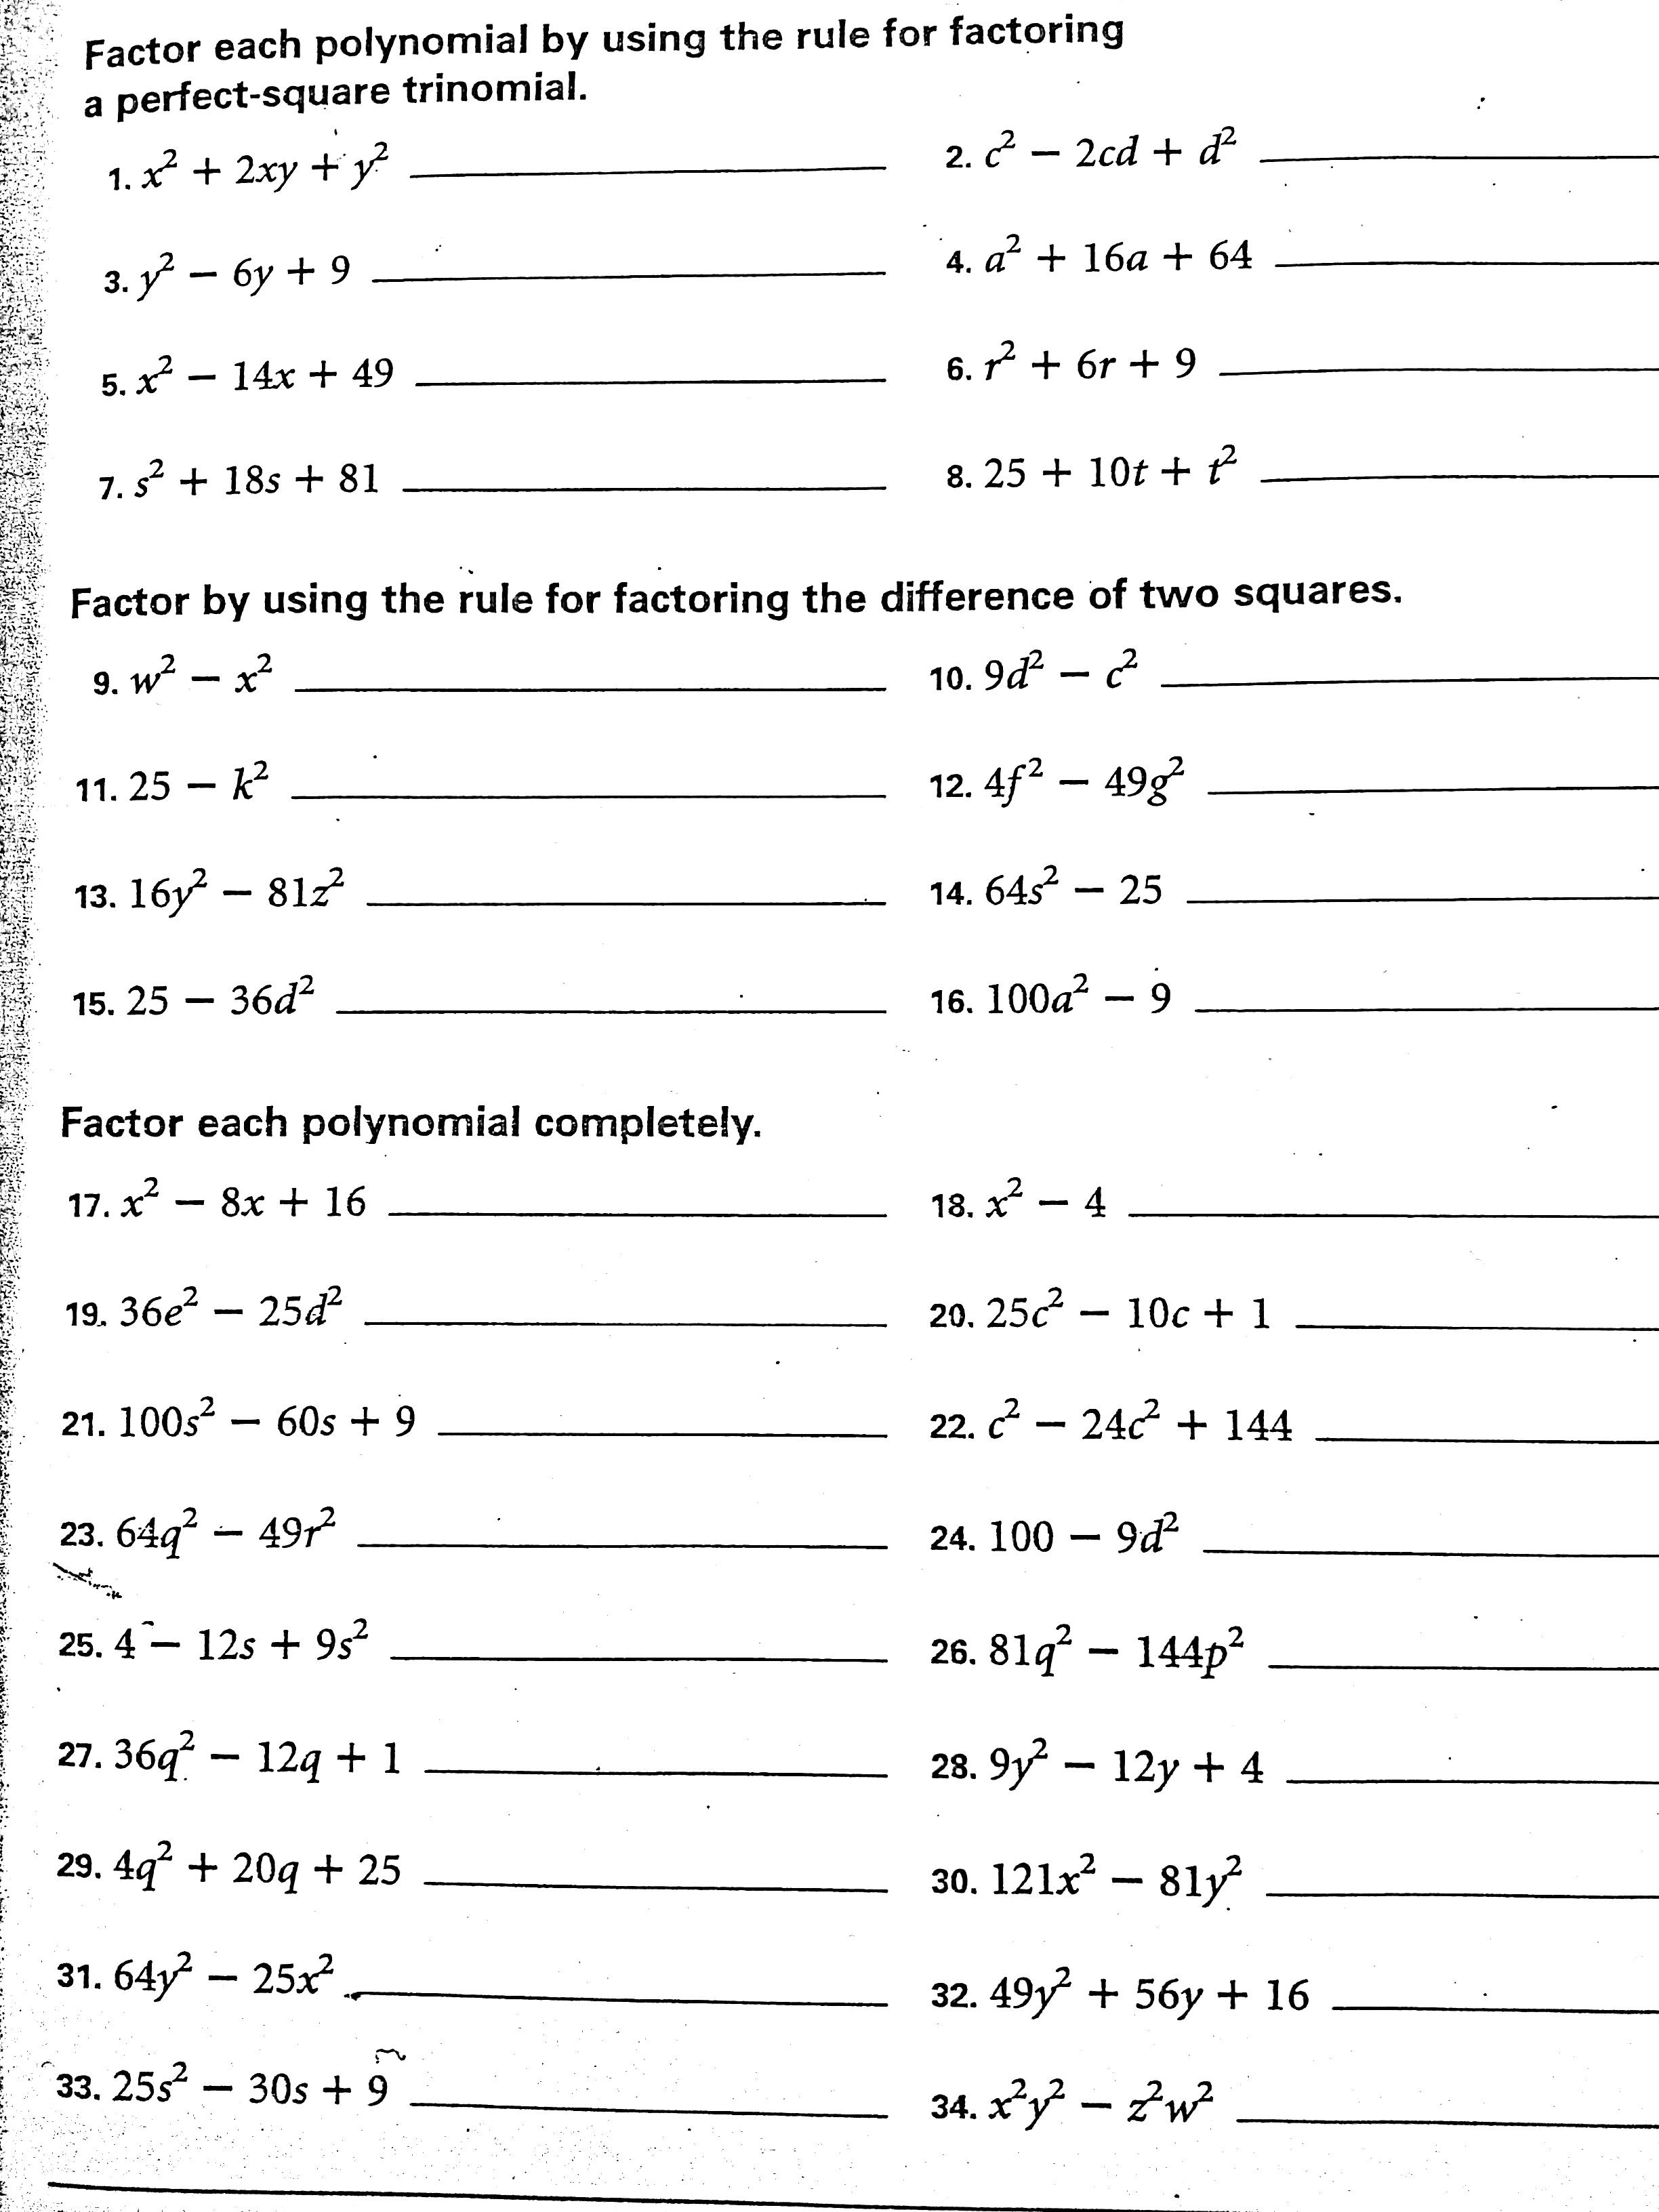 Worksheets Factoring Difference Of Squares Worksheet algebra 1 assignments swenson math attachments difference of squares perfect jpg factoring